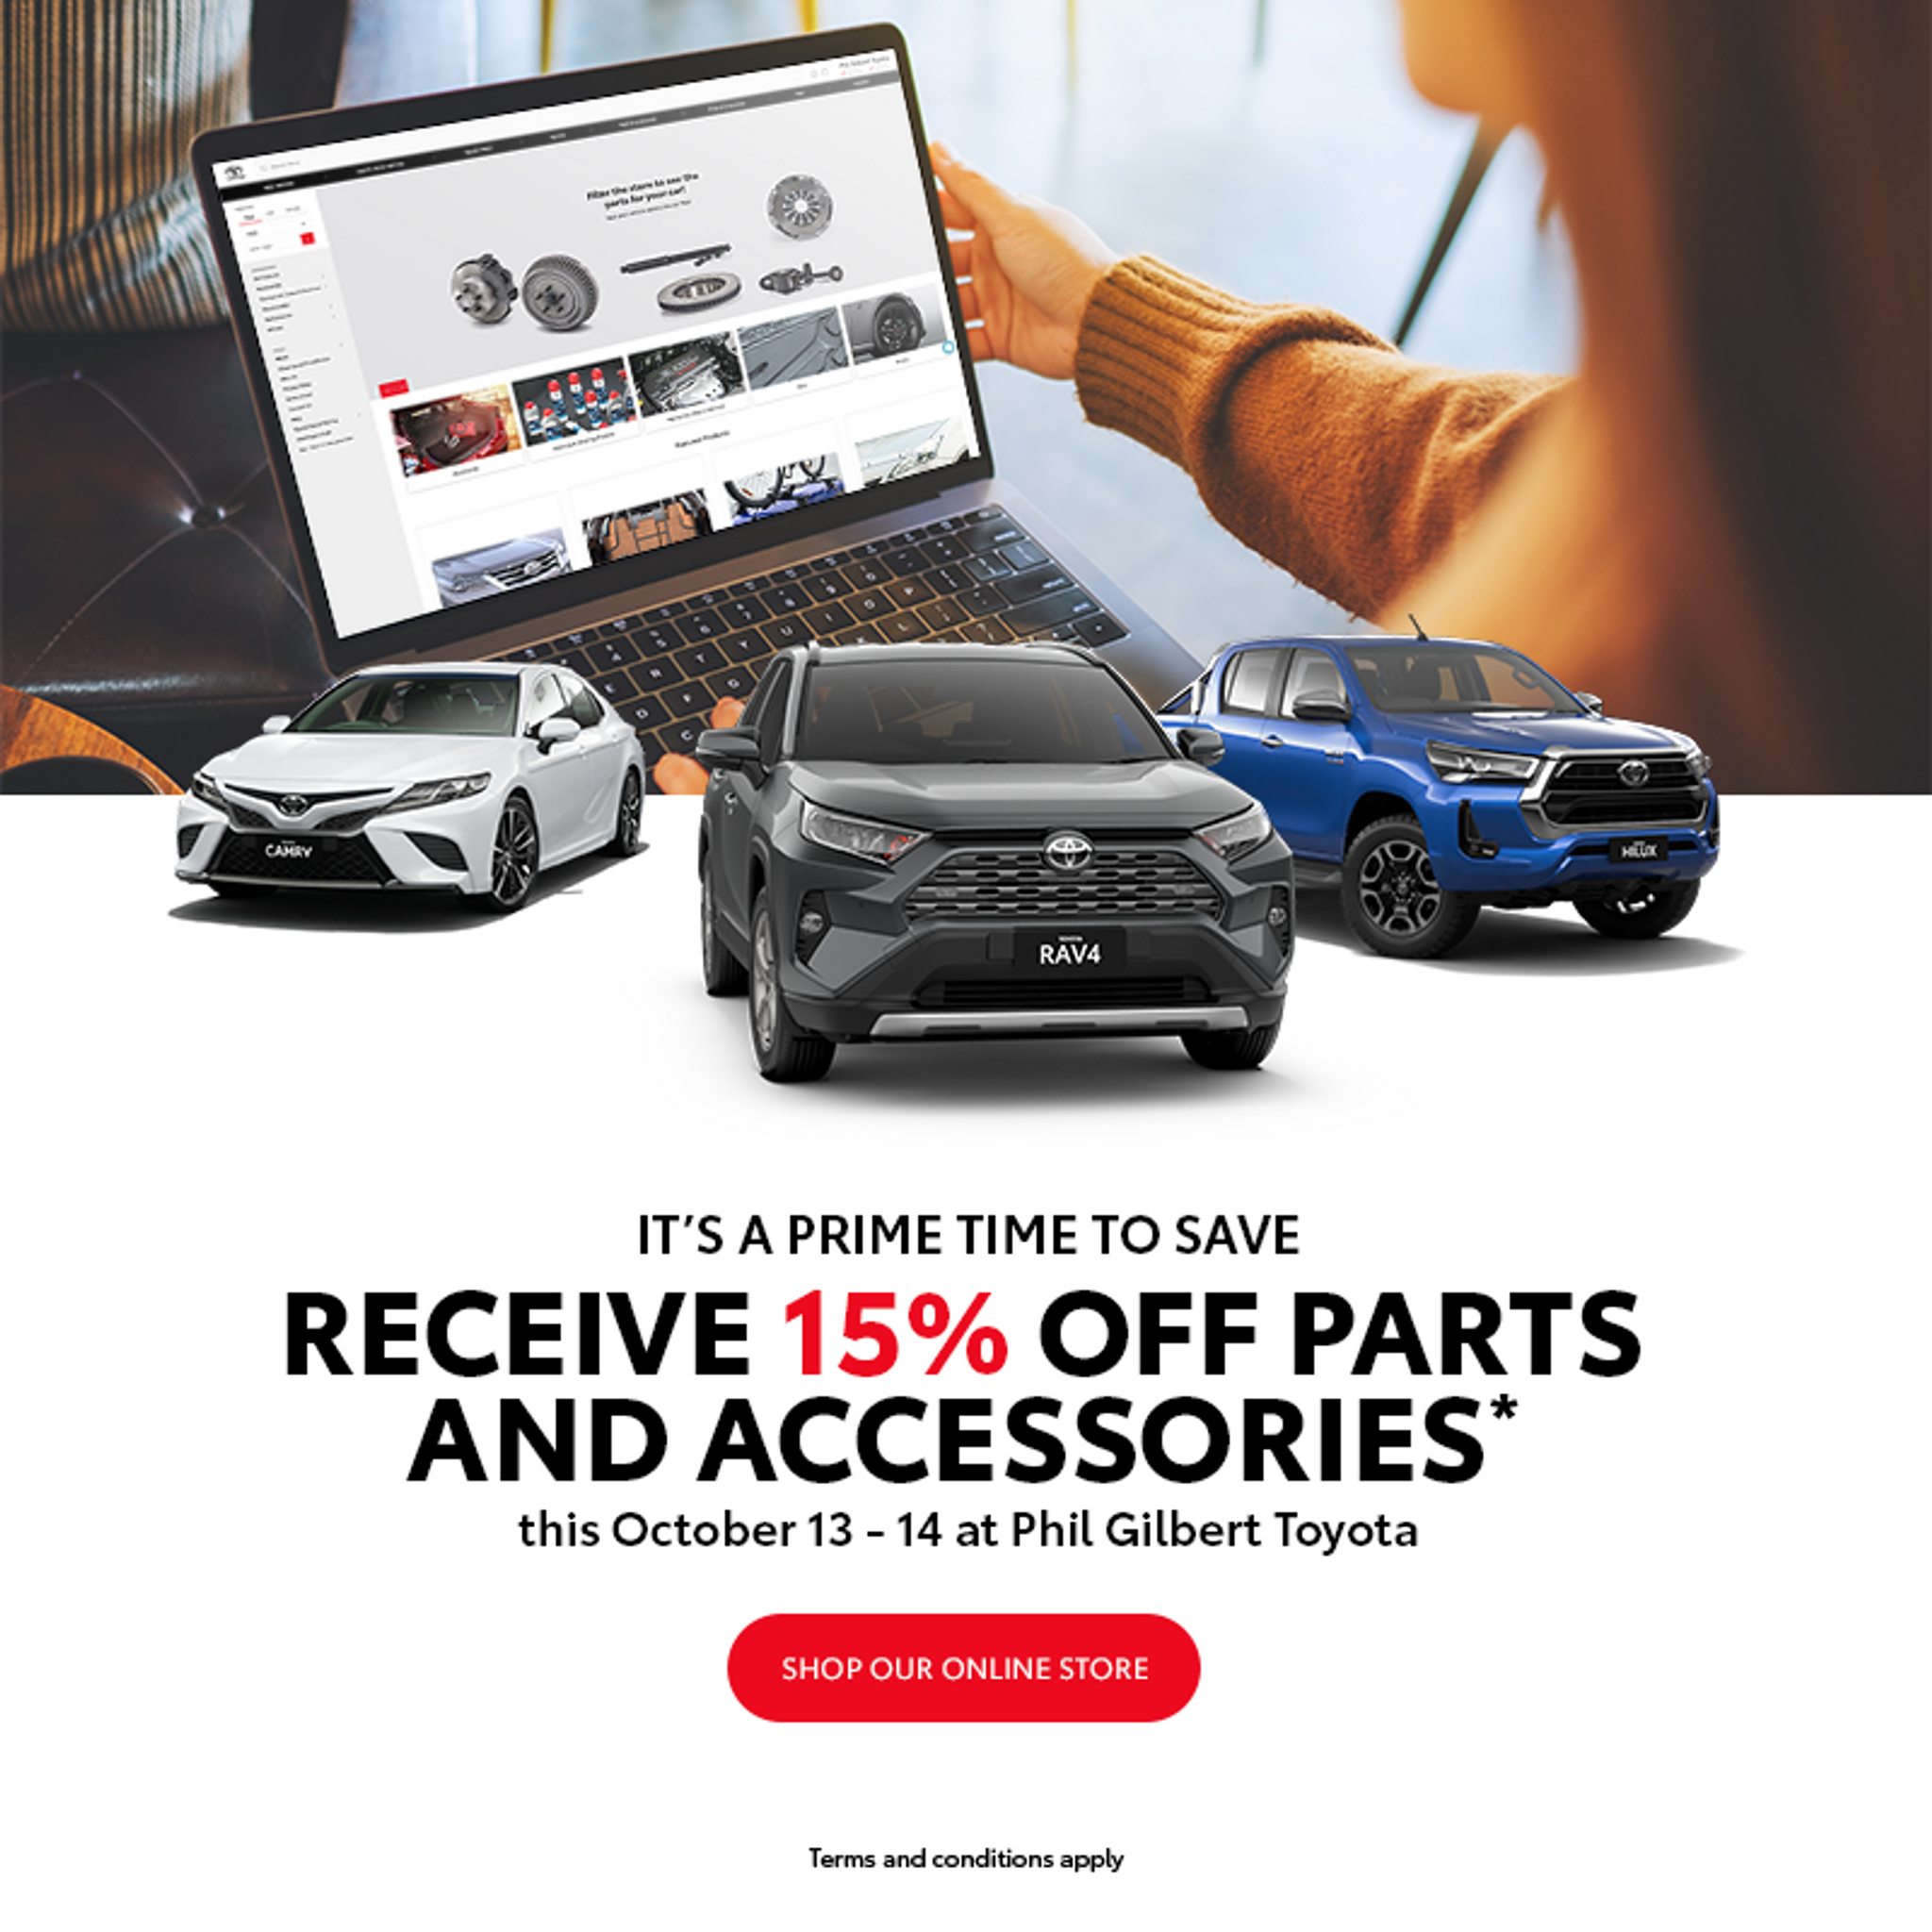 IT'S A PRIME TIME TO SAVE | Phil Gilbert Toyota Parts